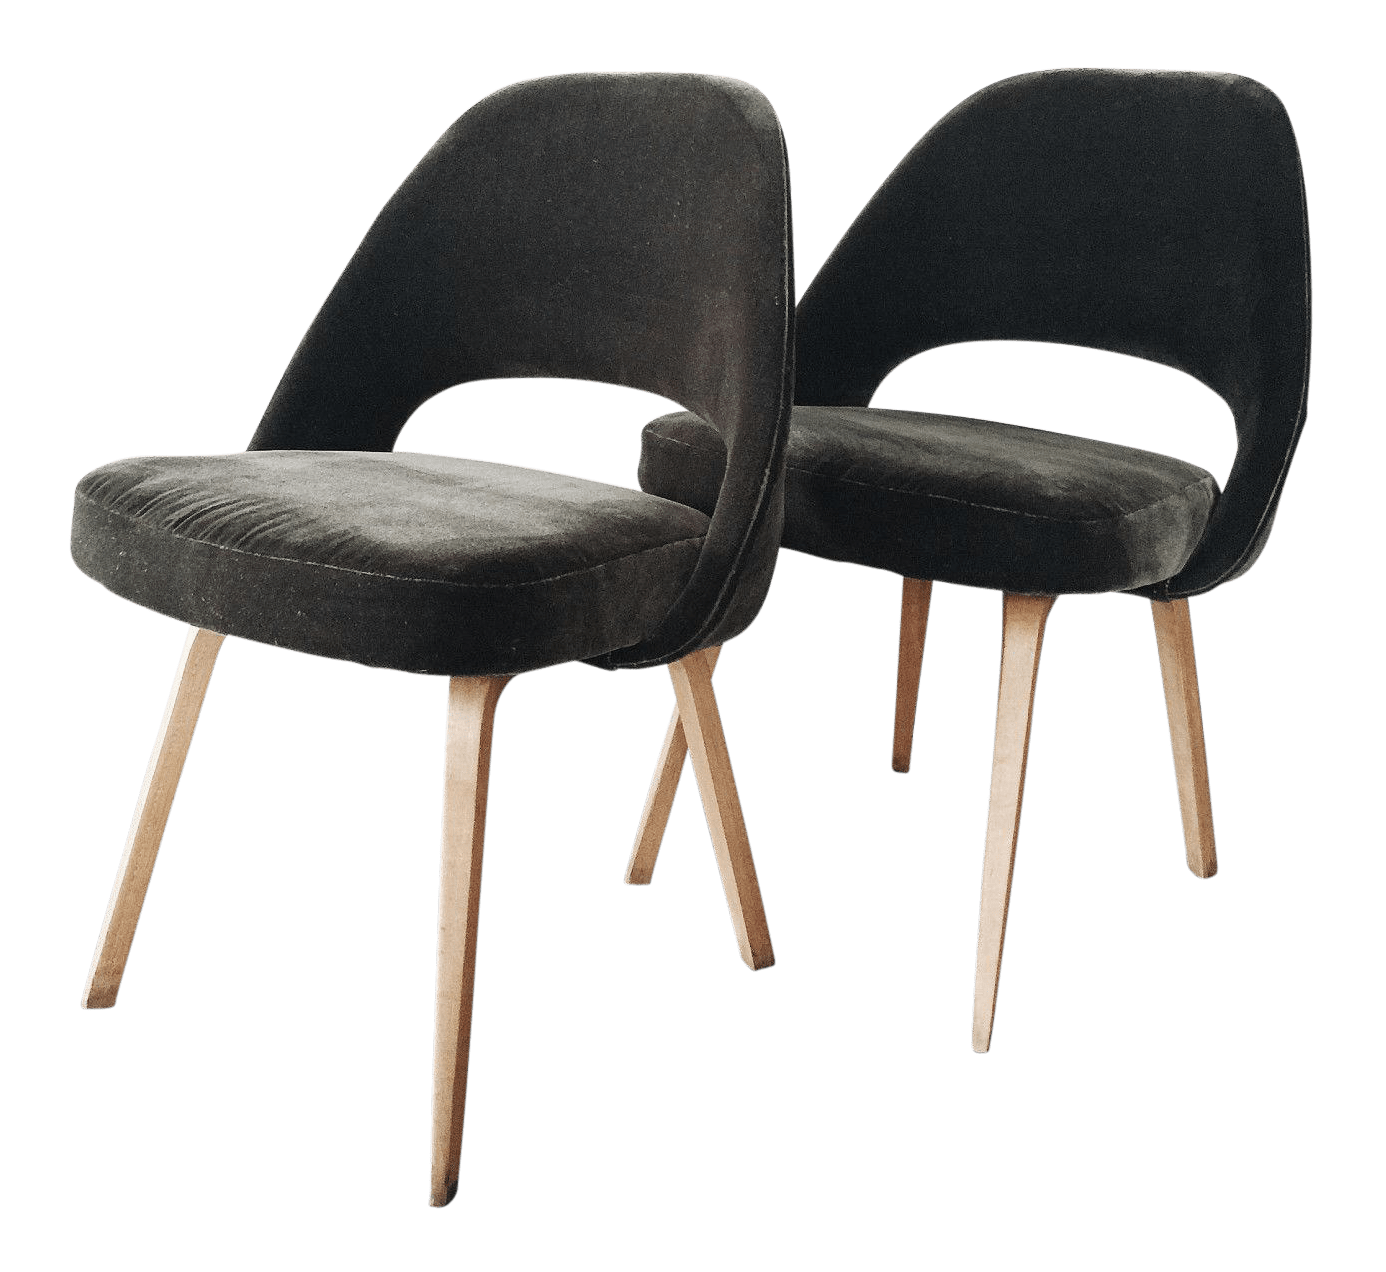 olive green velvet accent chair outdoor folding lounge chairs canada saarinen mid century a pair